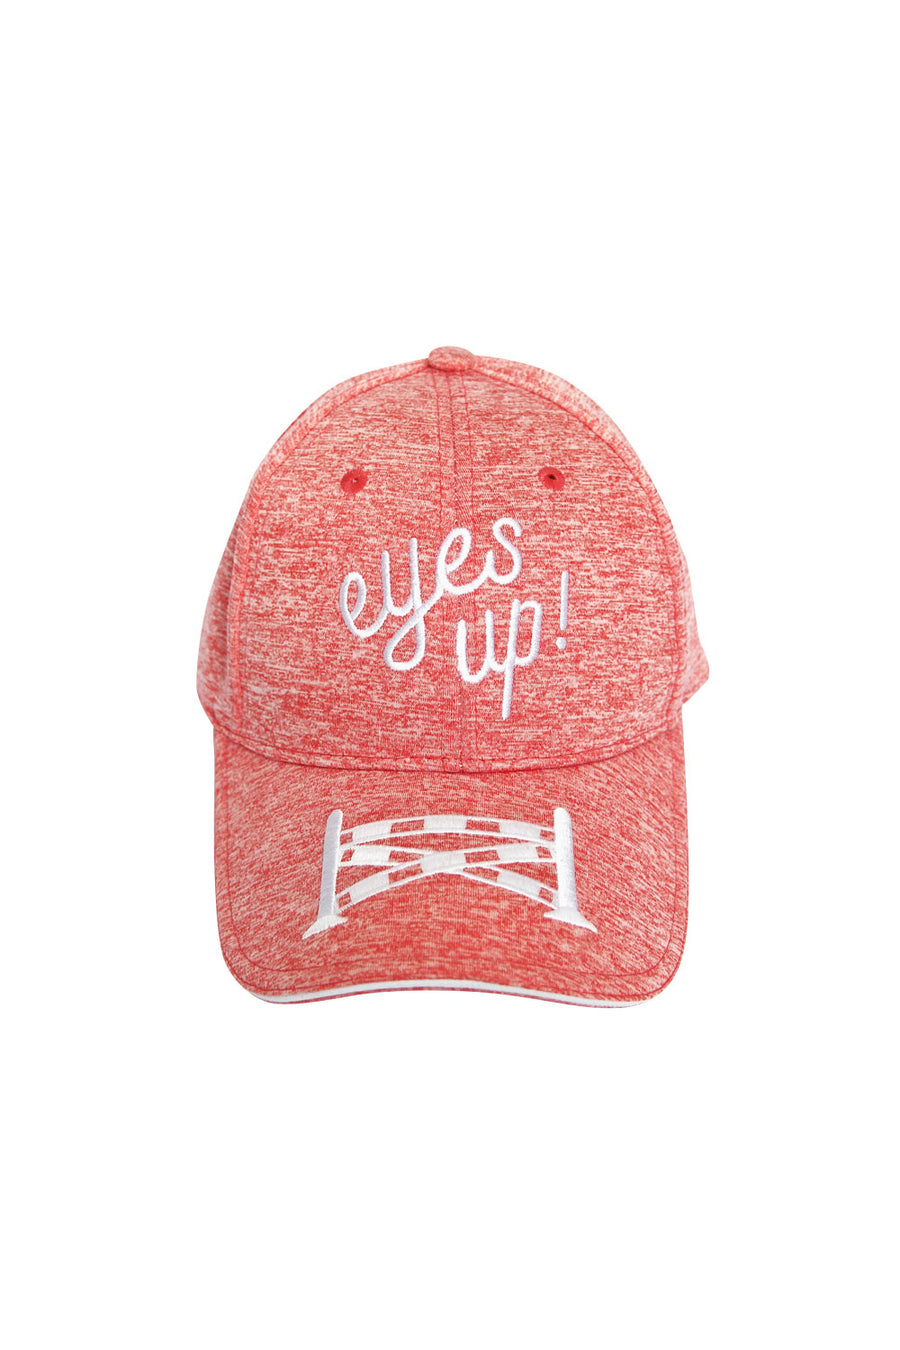 EYES UP RINGSIDE HAT - Leveza